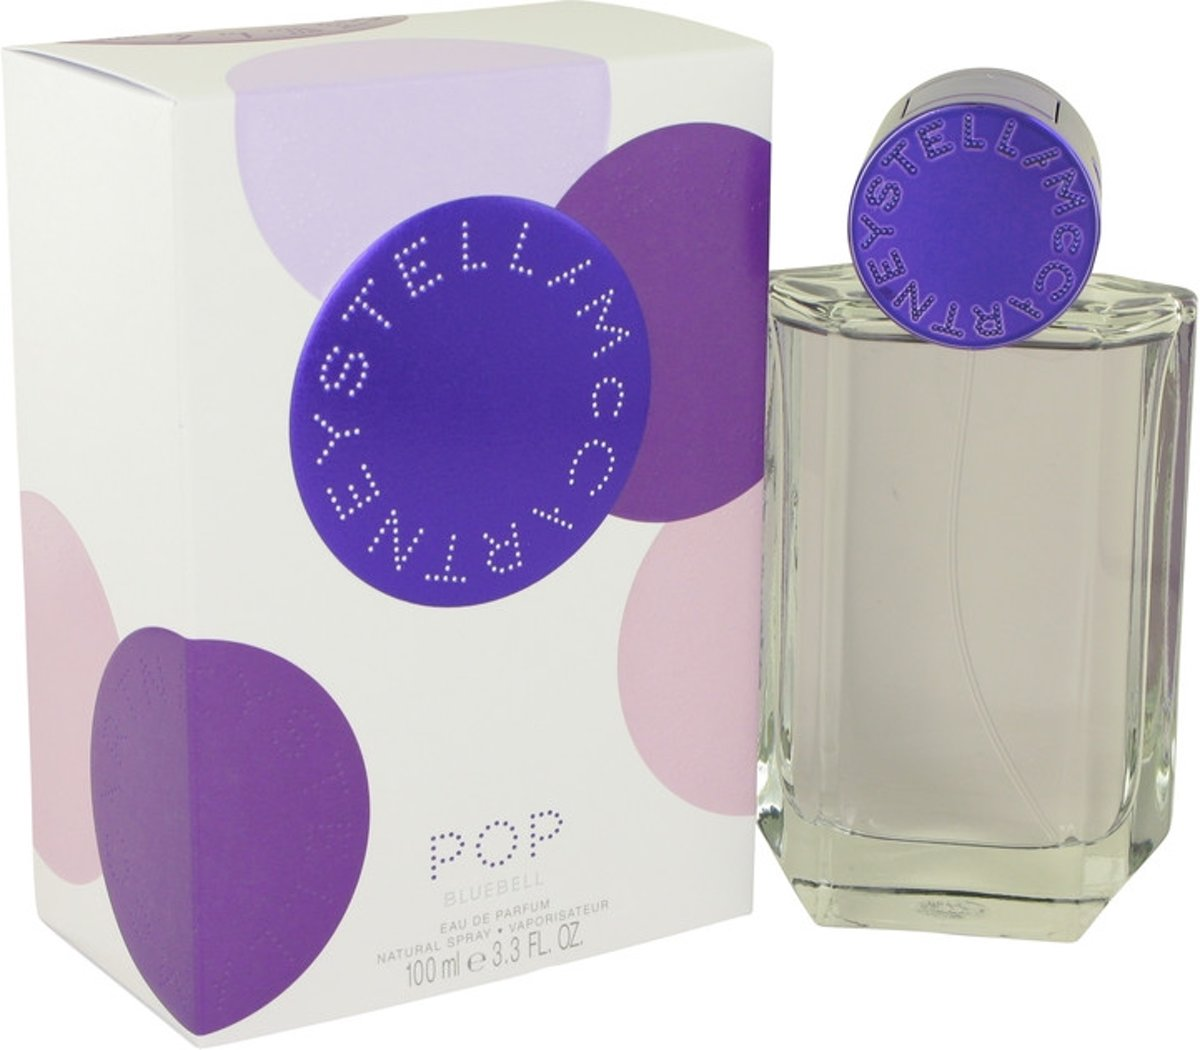 Stella McCartney Pop Bluebell - 100ml - Eau de parfum